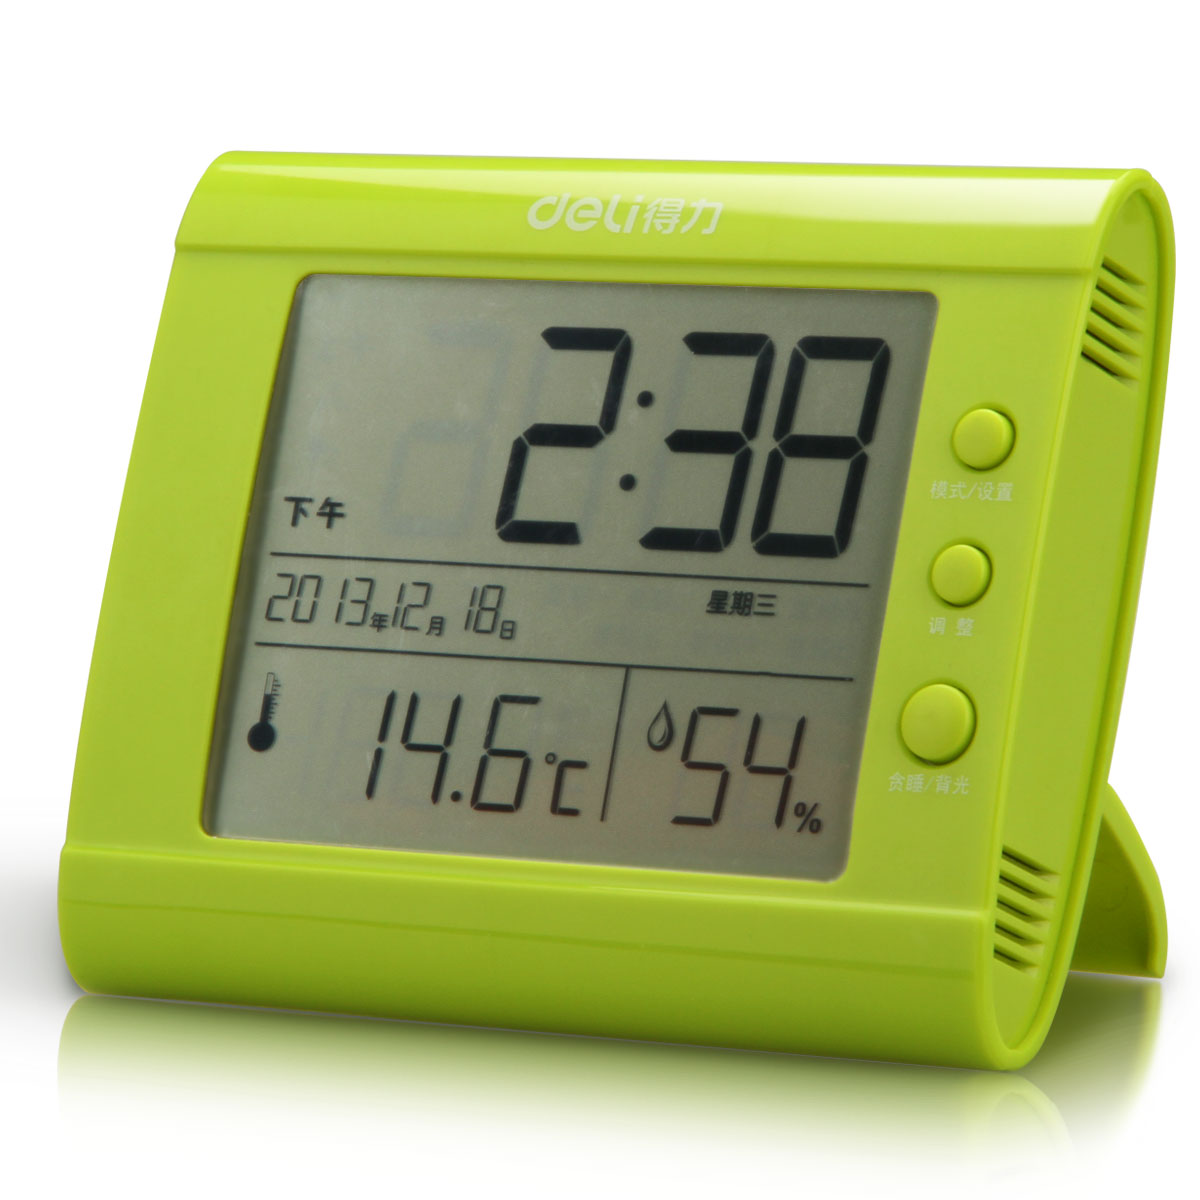 Cheap new deli 9026 multifunction electronic alarm clock backlight night fashion classic style